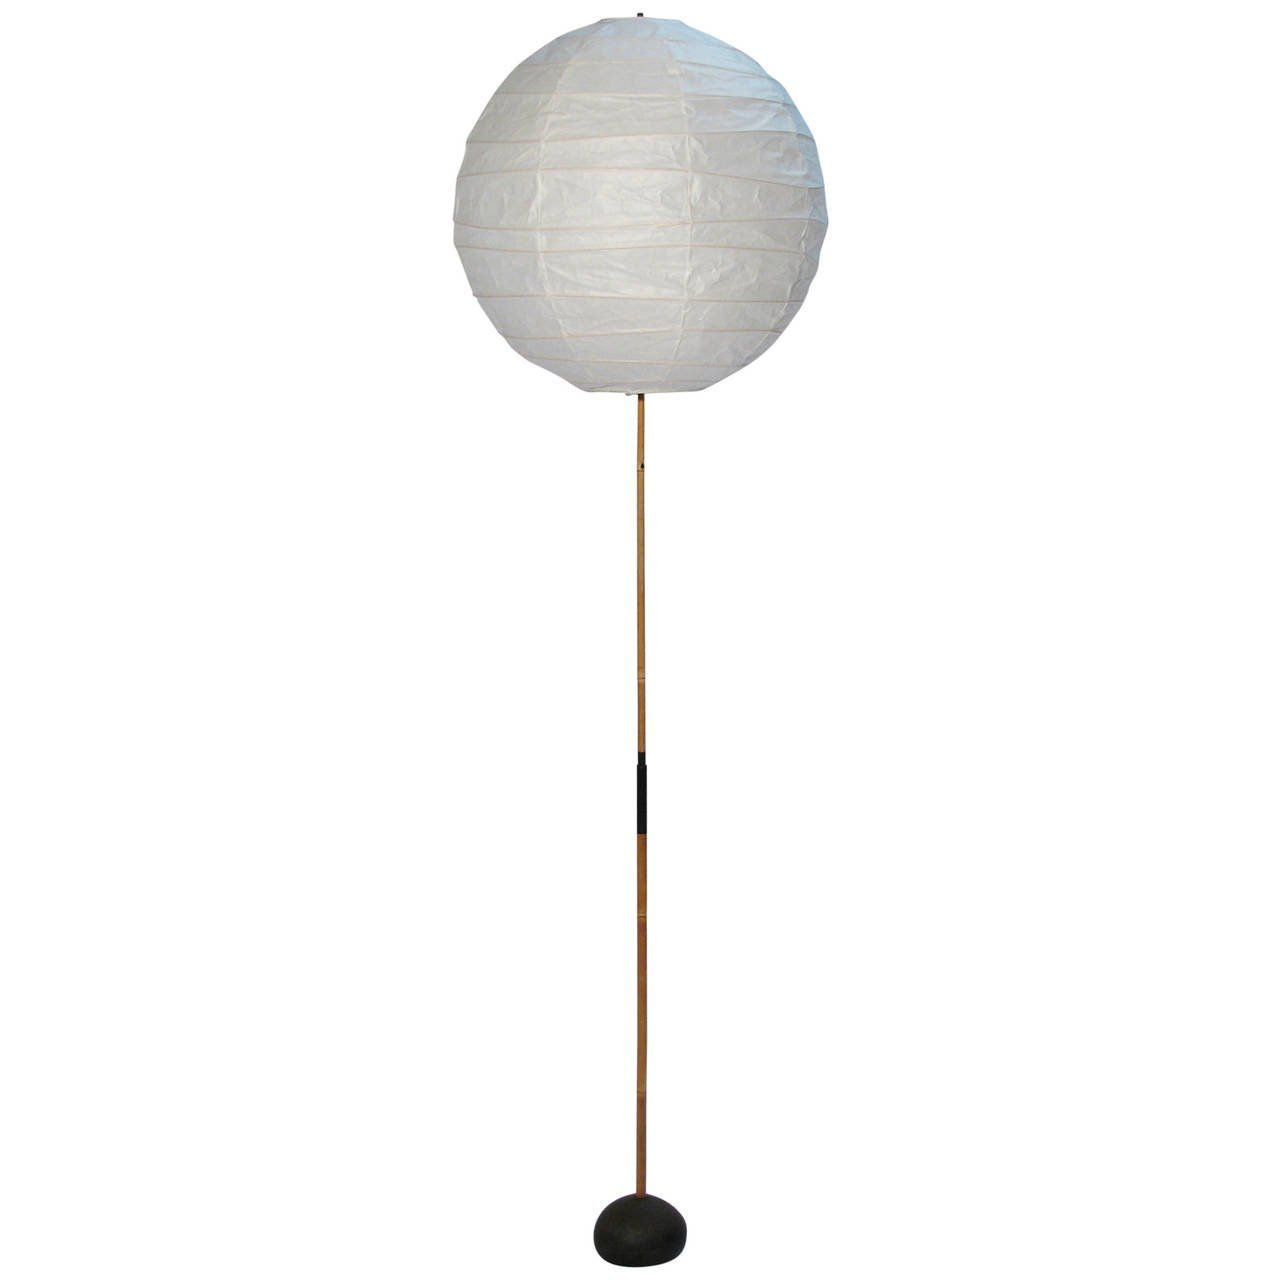 Isamu Noguchi Bamboo Floor Lamp for Japanese modern there is no ...